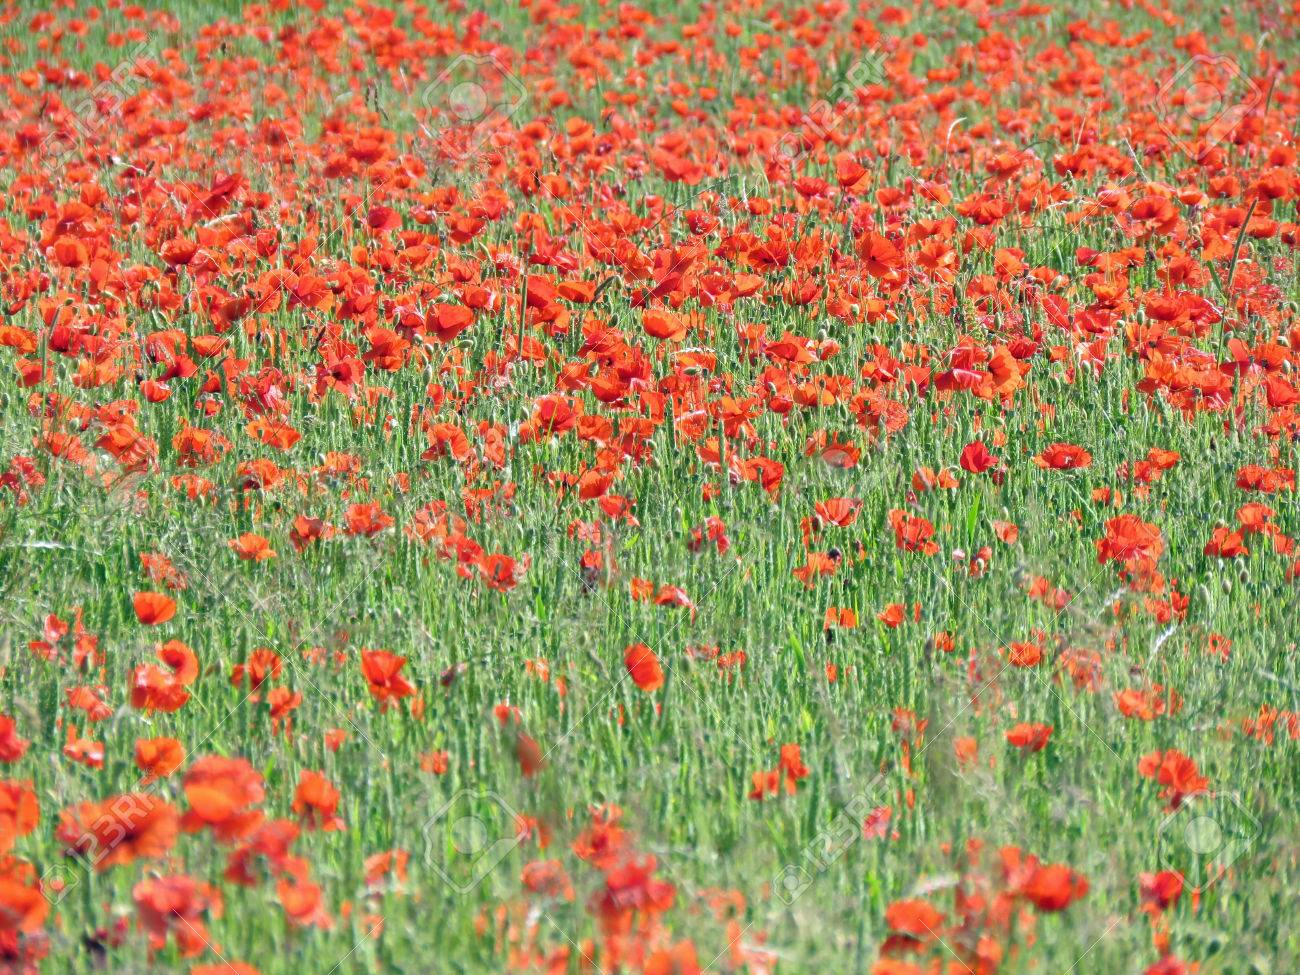 A meadow full of poppies and grasses in rural English countryside Standard-Bild - 82552574